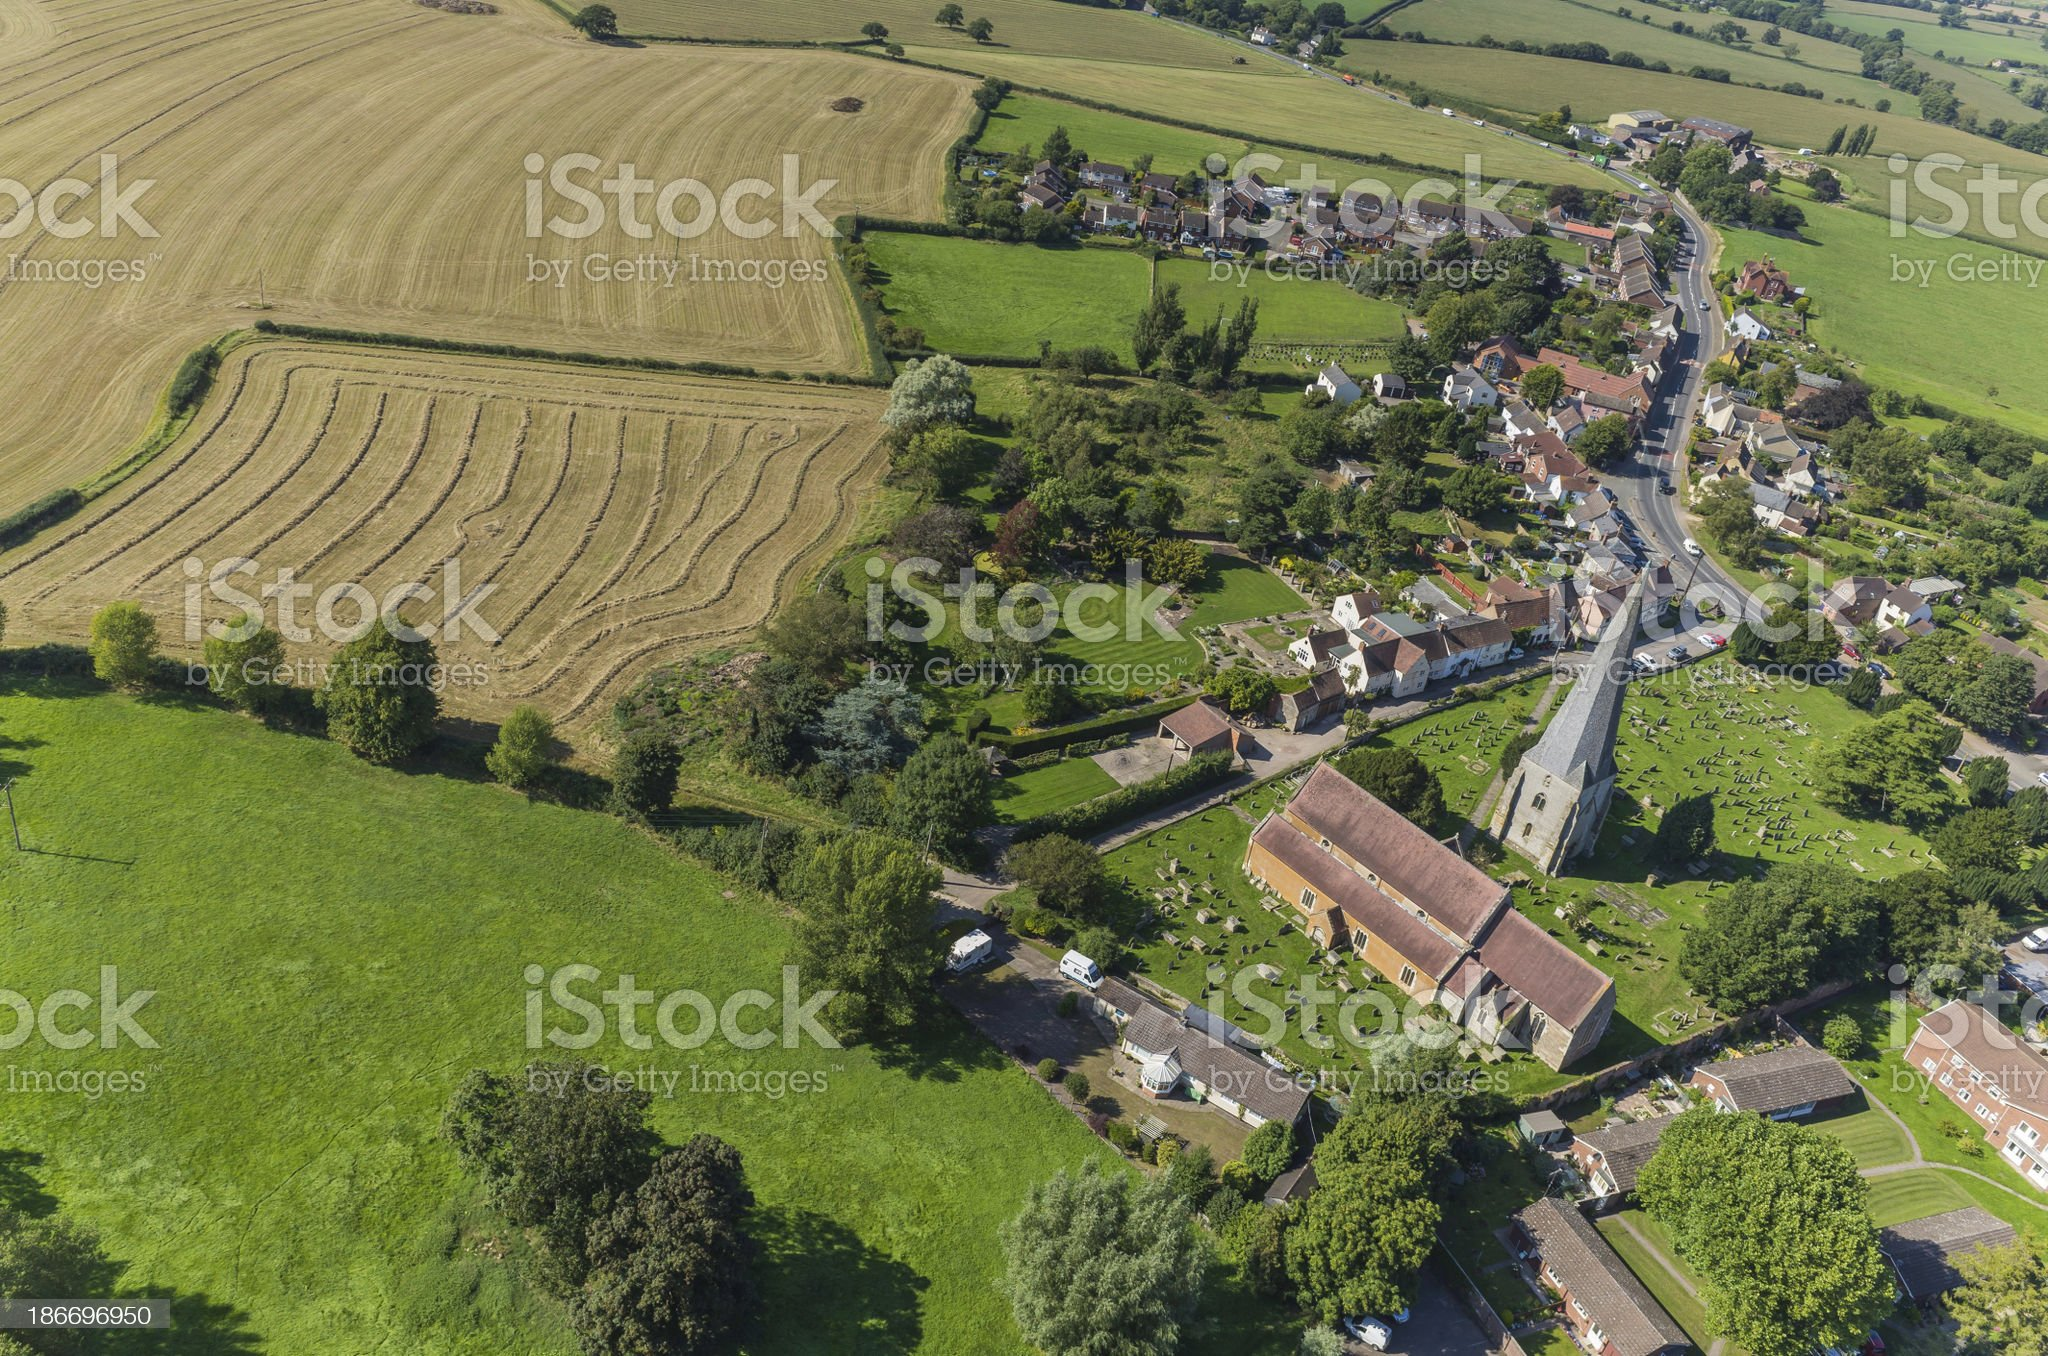 Aerial view over rural village crop fields church spire farms royalty-free stock photo